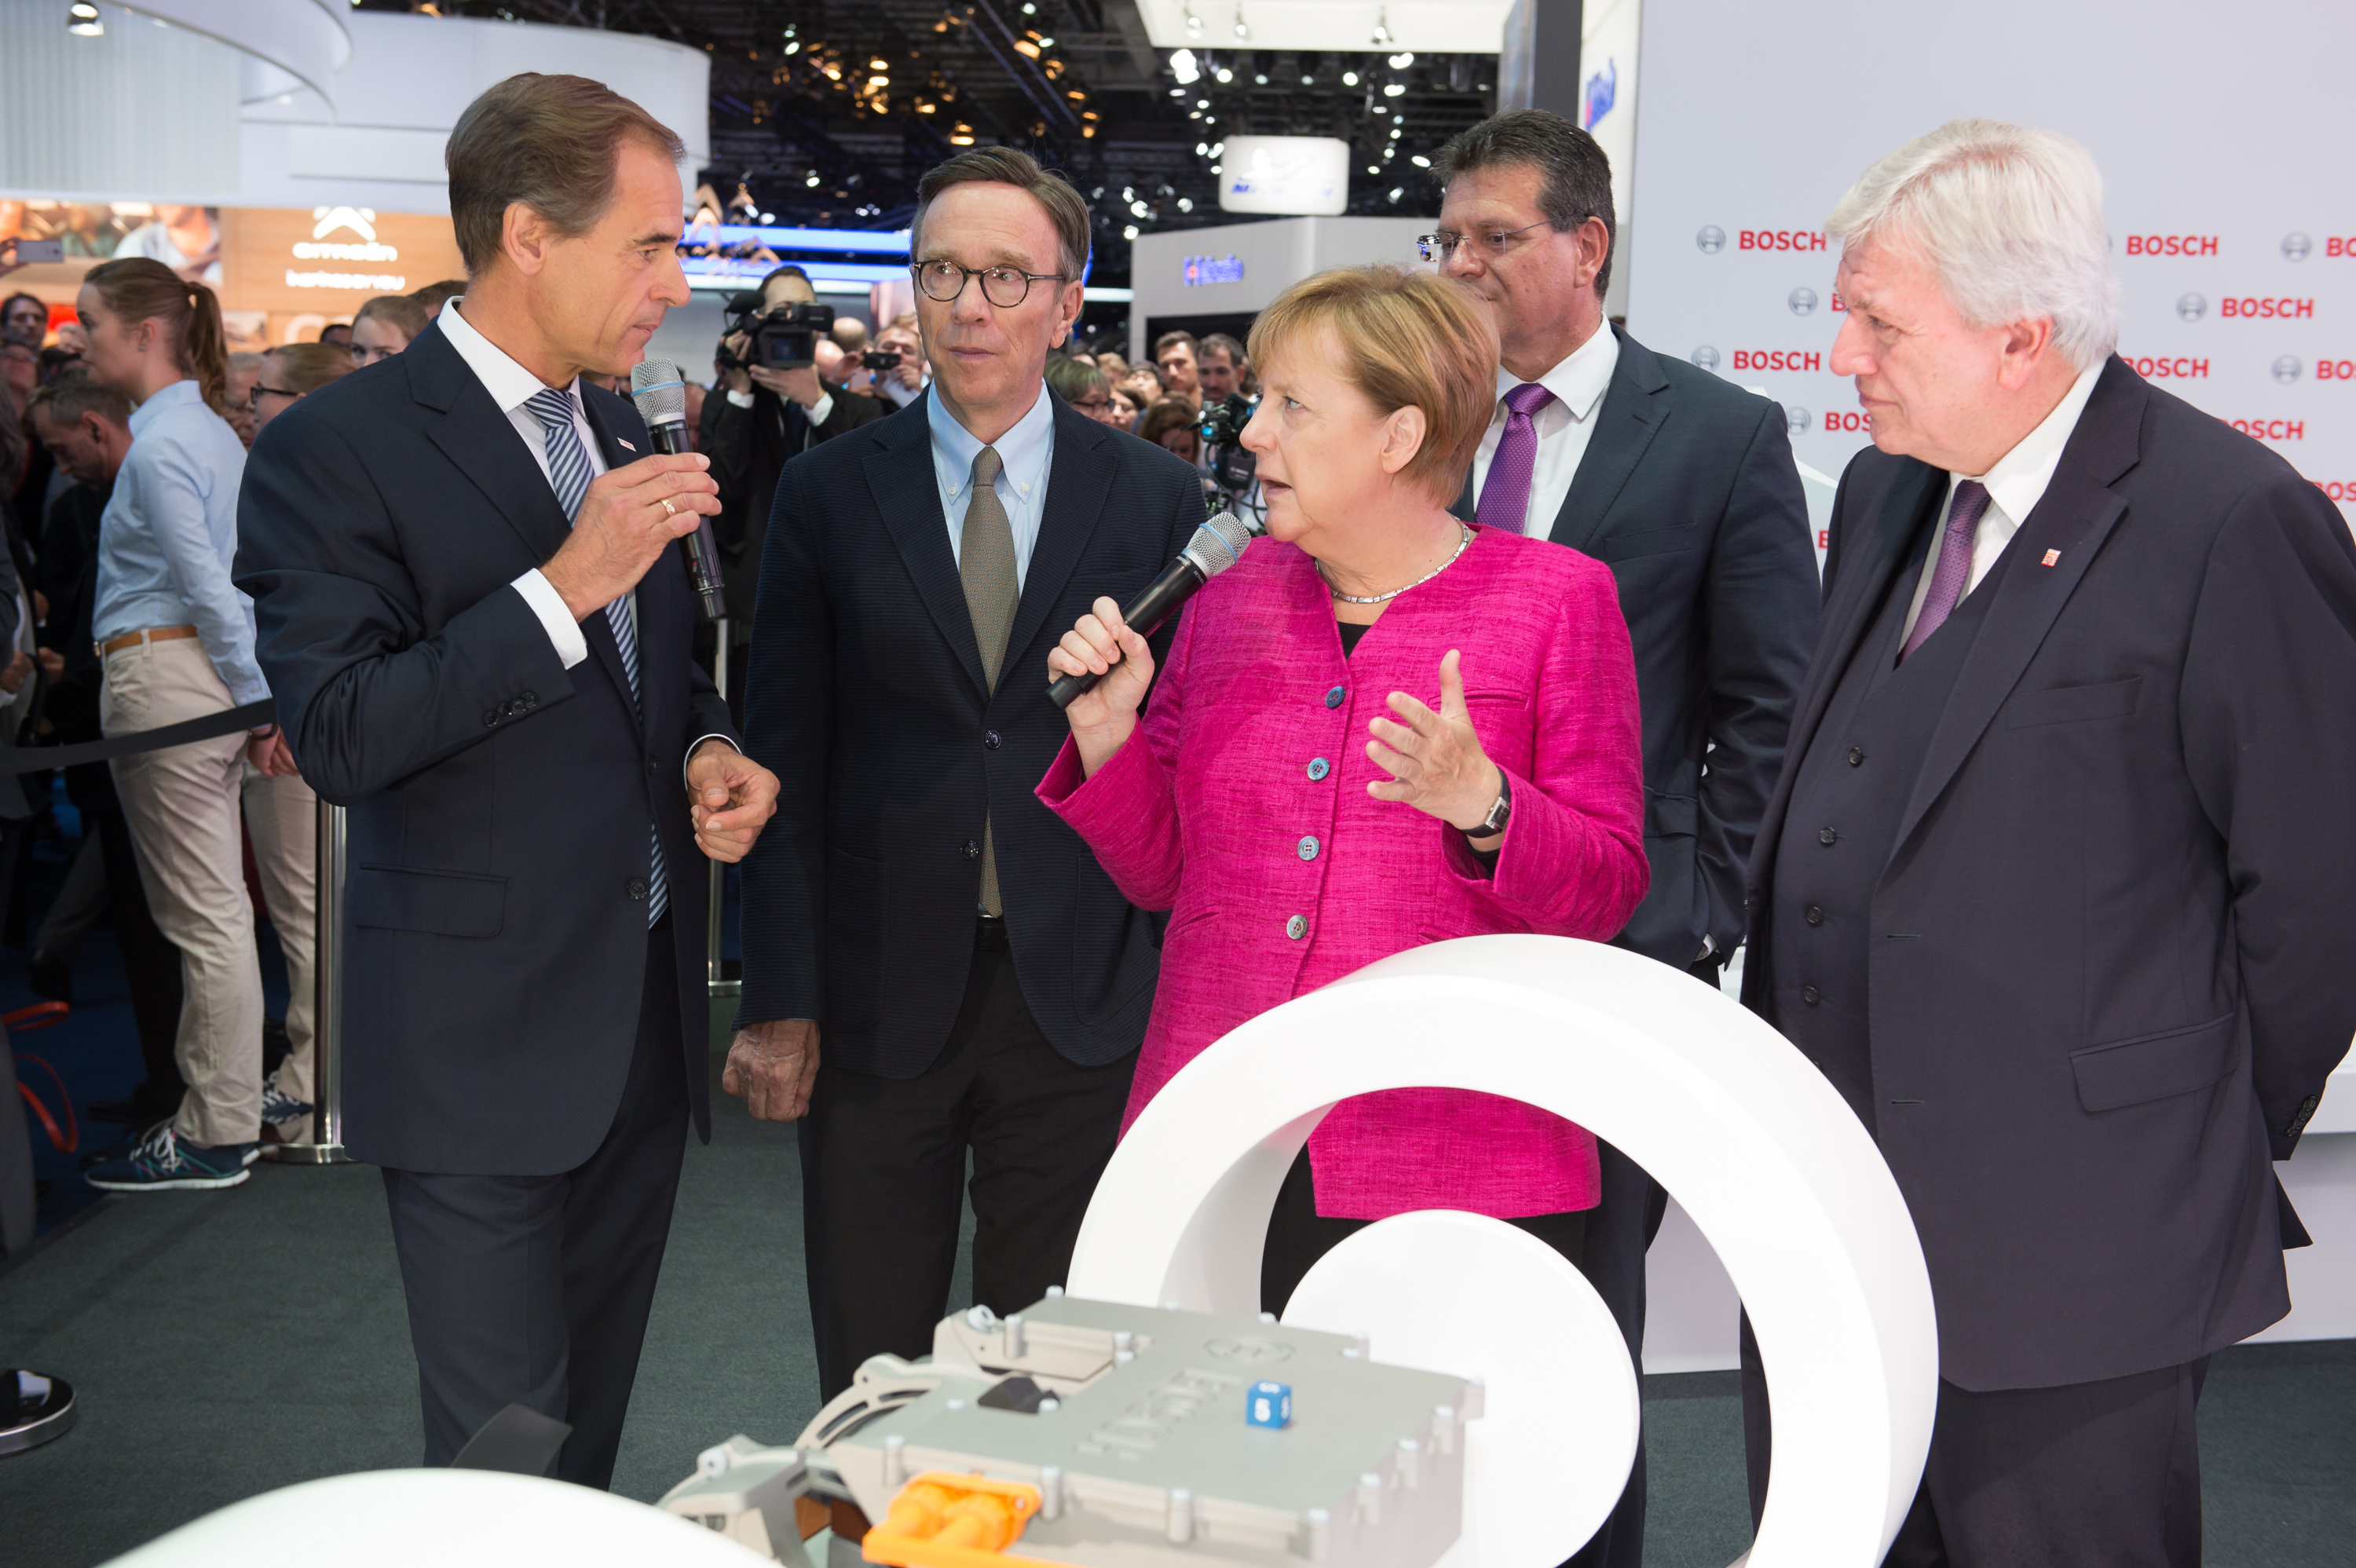 Bosch-CEO Dr. Volkmar Denner welcomes chancellor Angela Merkel at the Bosch booth at IAA 2017.